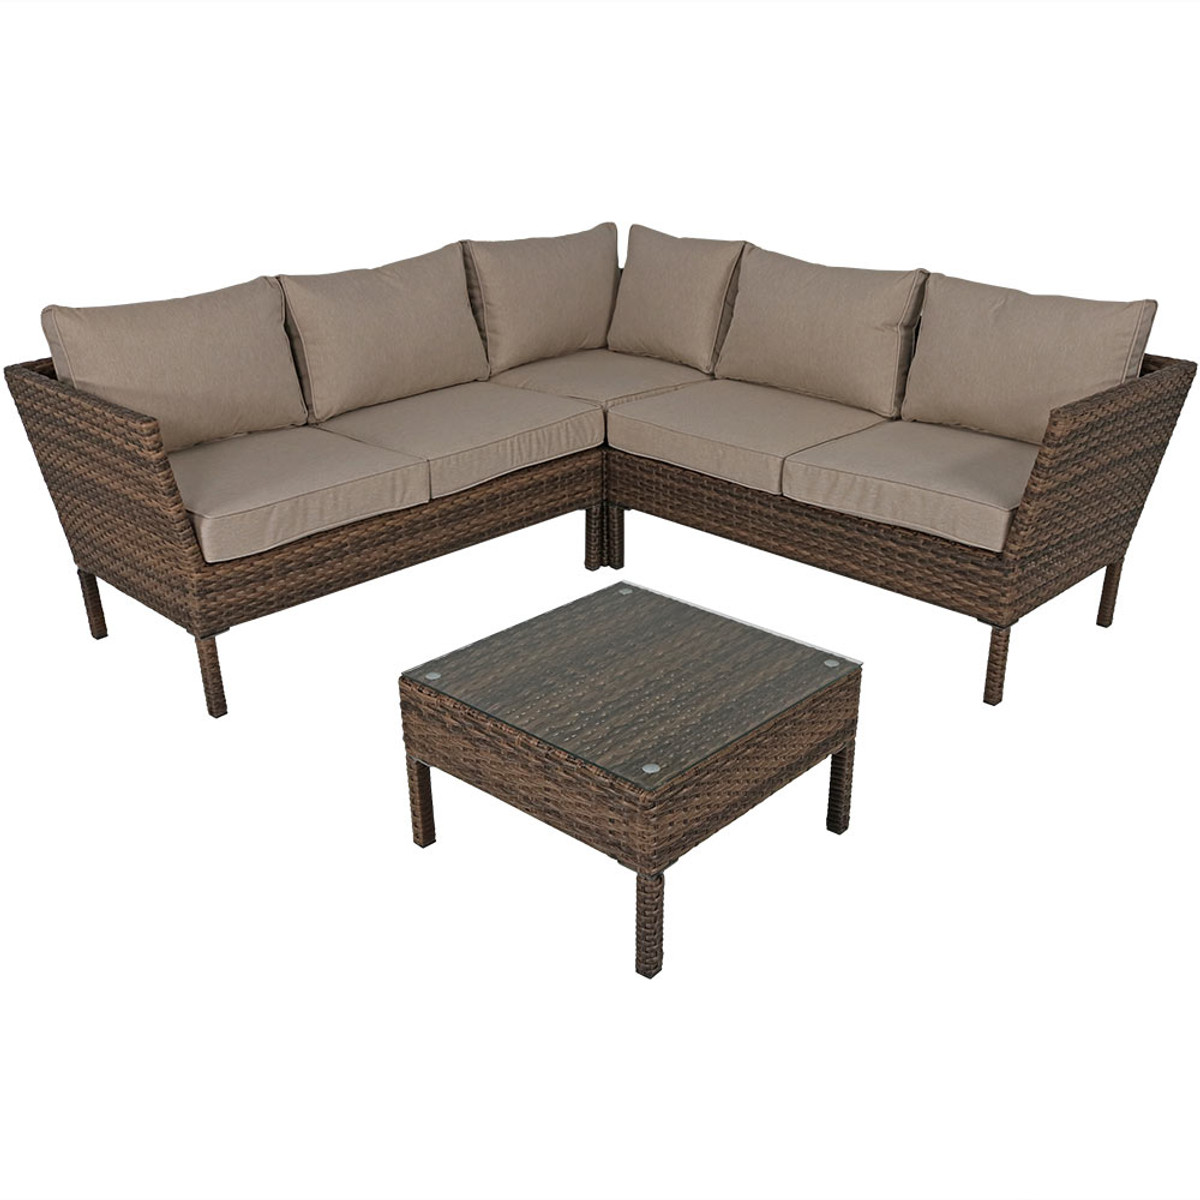 Excellent Sunnydaze Avel 4 Piece Sofa Sectional Patio Furniture Set Inzonedesignstudio Interior Chair Design Inzonedesignstudiocom